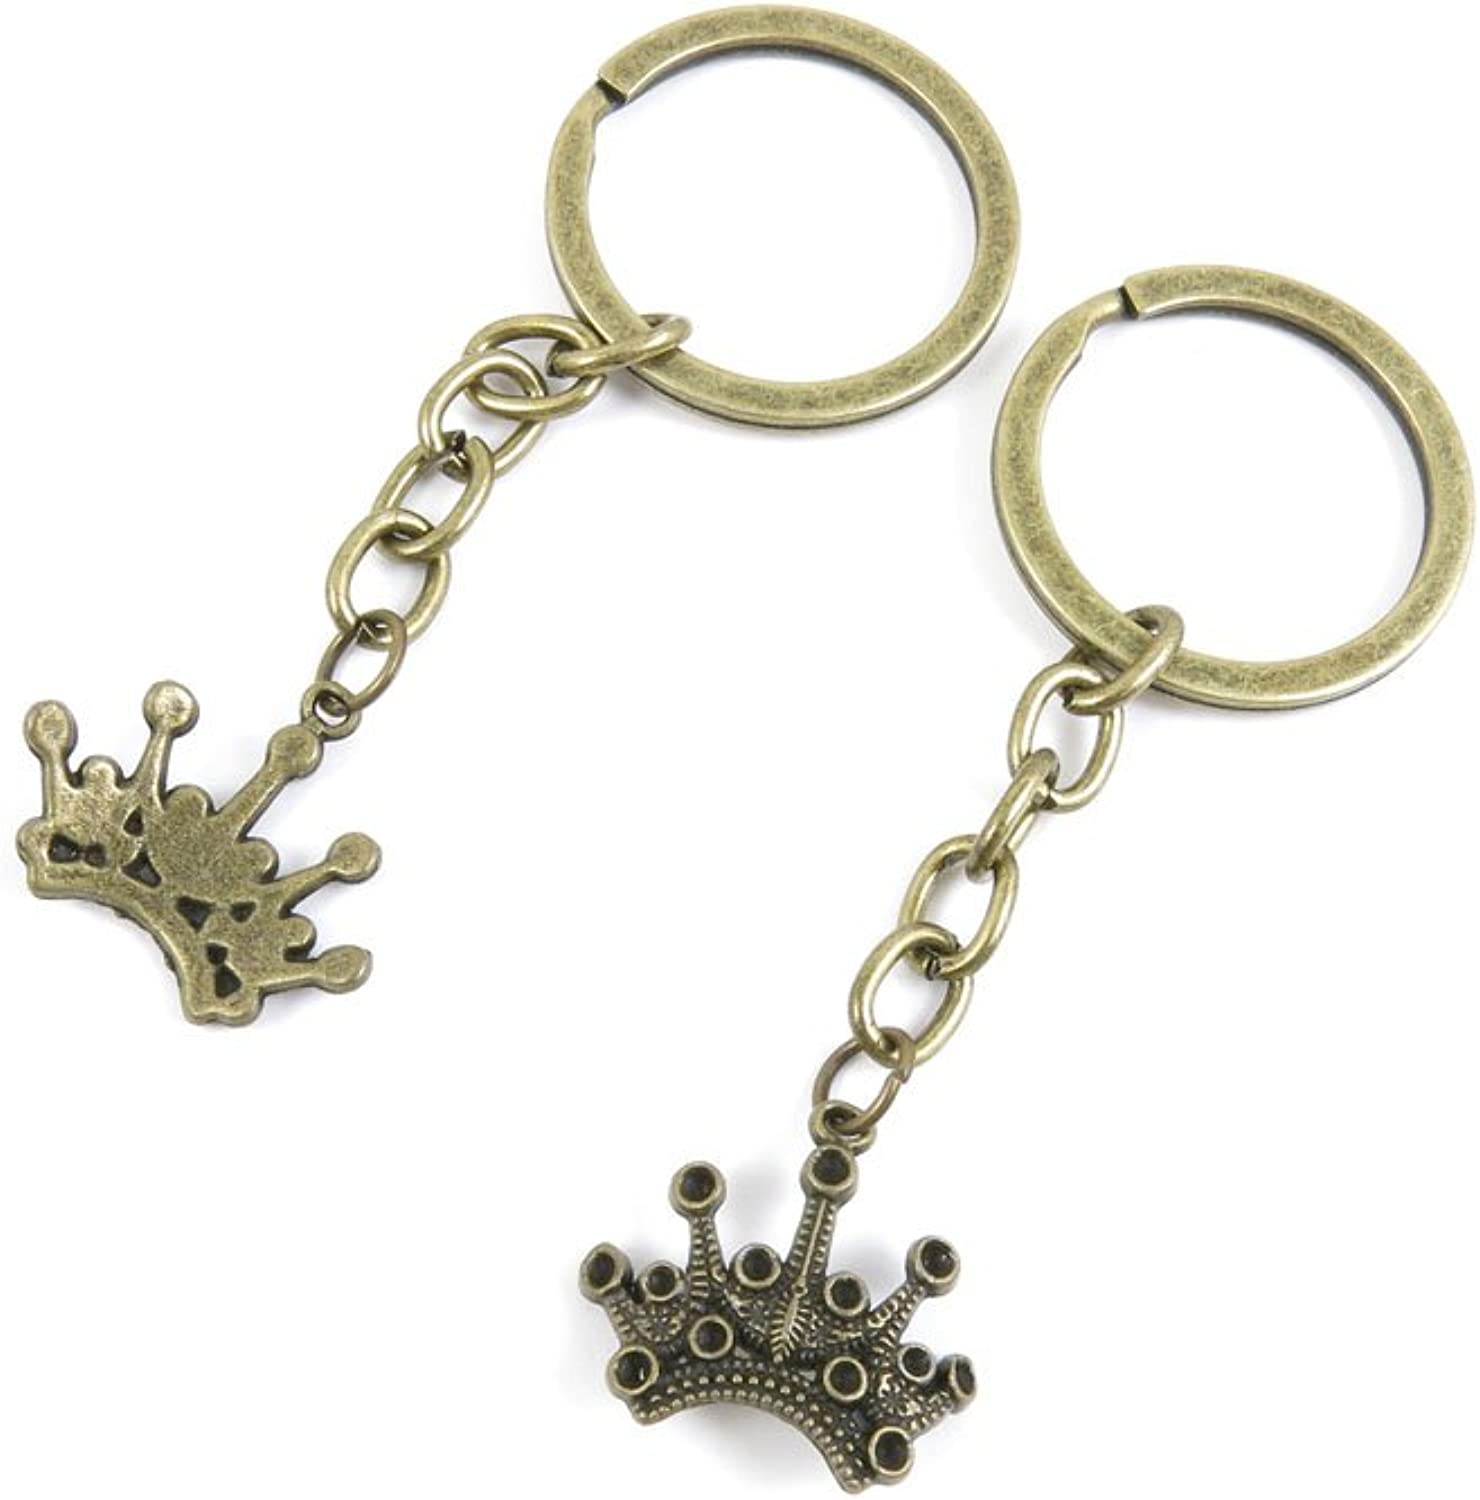 100 PCS Keyrings Keychains Key Ring Chains Tags Jewelry Findings Clasps Buckles Supplies R7OT9 Crown